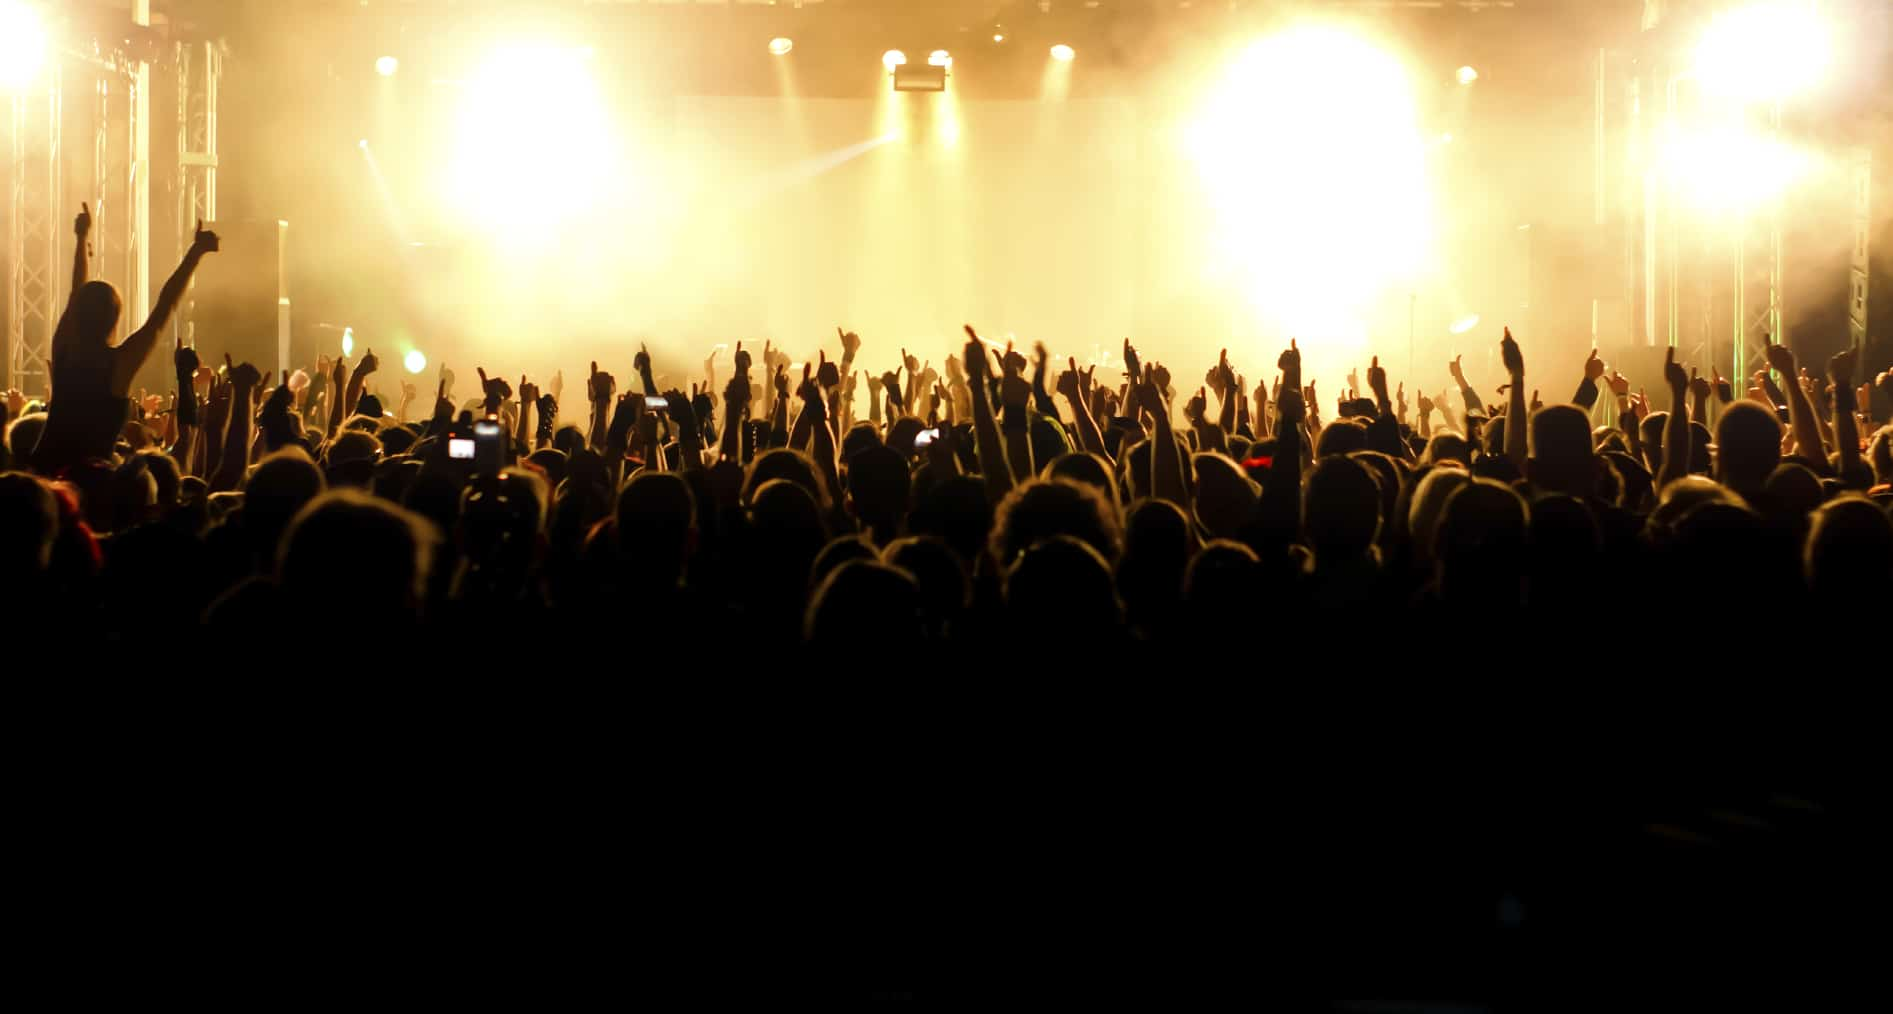 3 astuces pour passer un bon concert - Concert crowd wallpaper ...